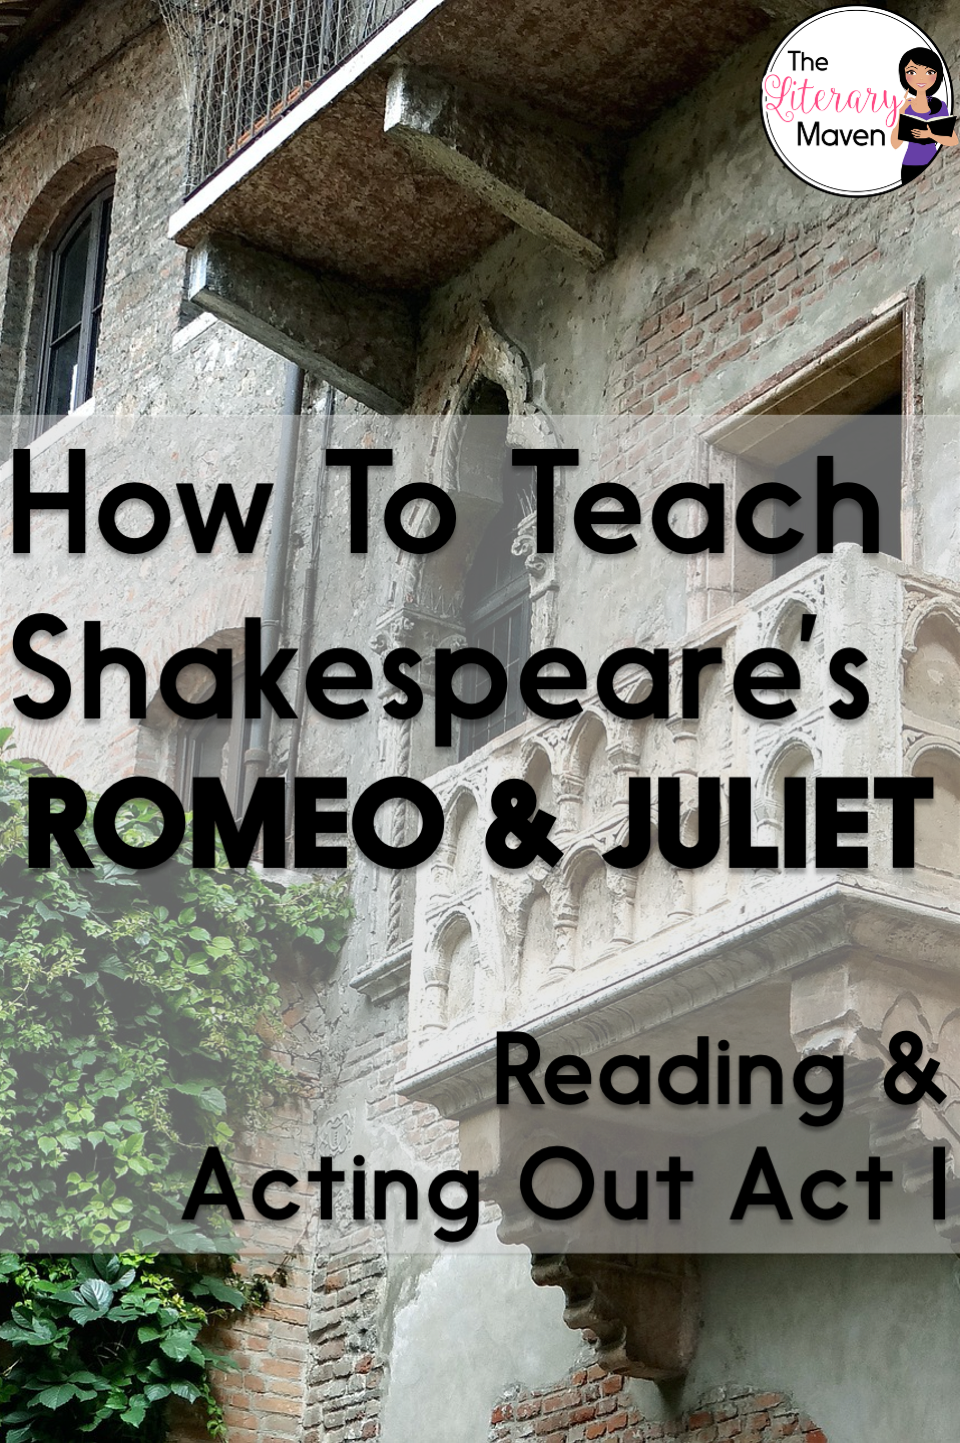 Whether you are a teacher tackling William Shakespeare's play Romeo and Juliet for the first time or you are a veteran looking to change how you've taught it in the past, it is always helpful to find out how another teacher plans it all out. Read on to find out what scenes I focus on in Act I and why, how my students read and act out those scenes, and what activities I use to extend learning and make connections.